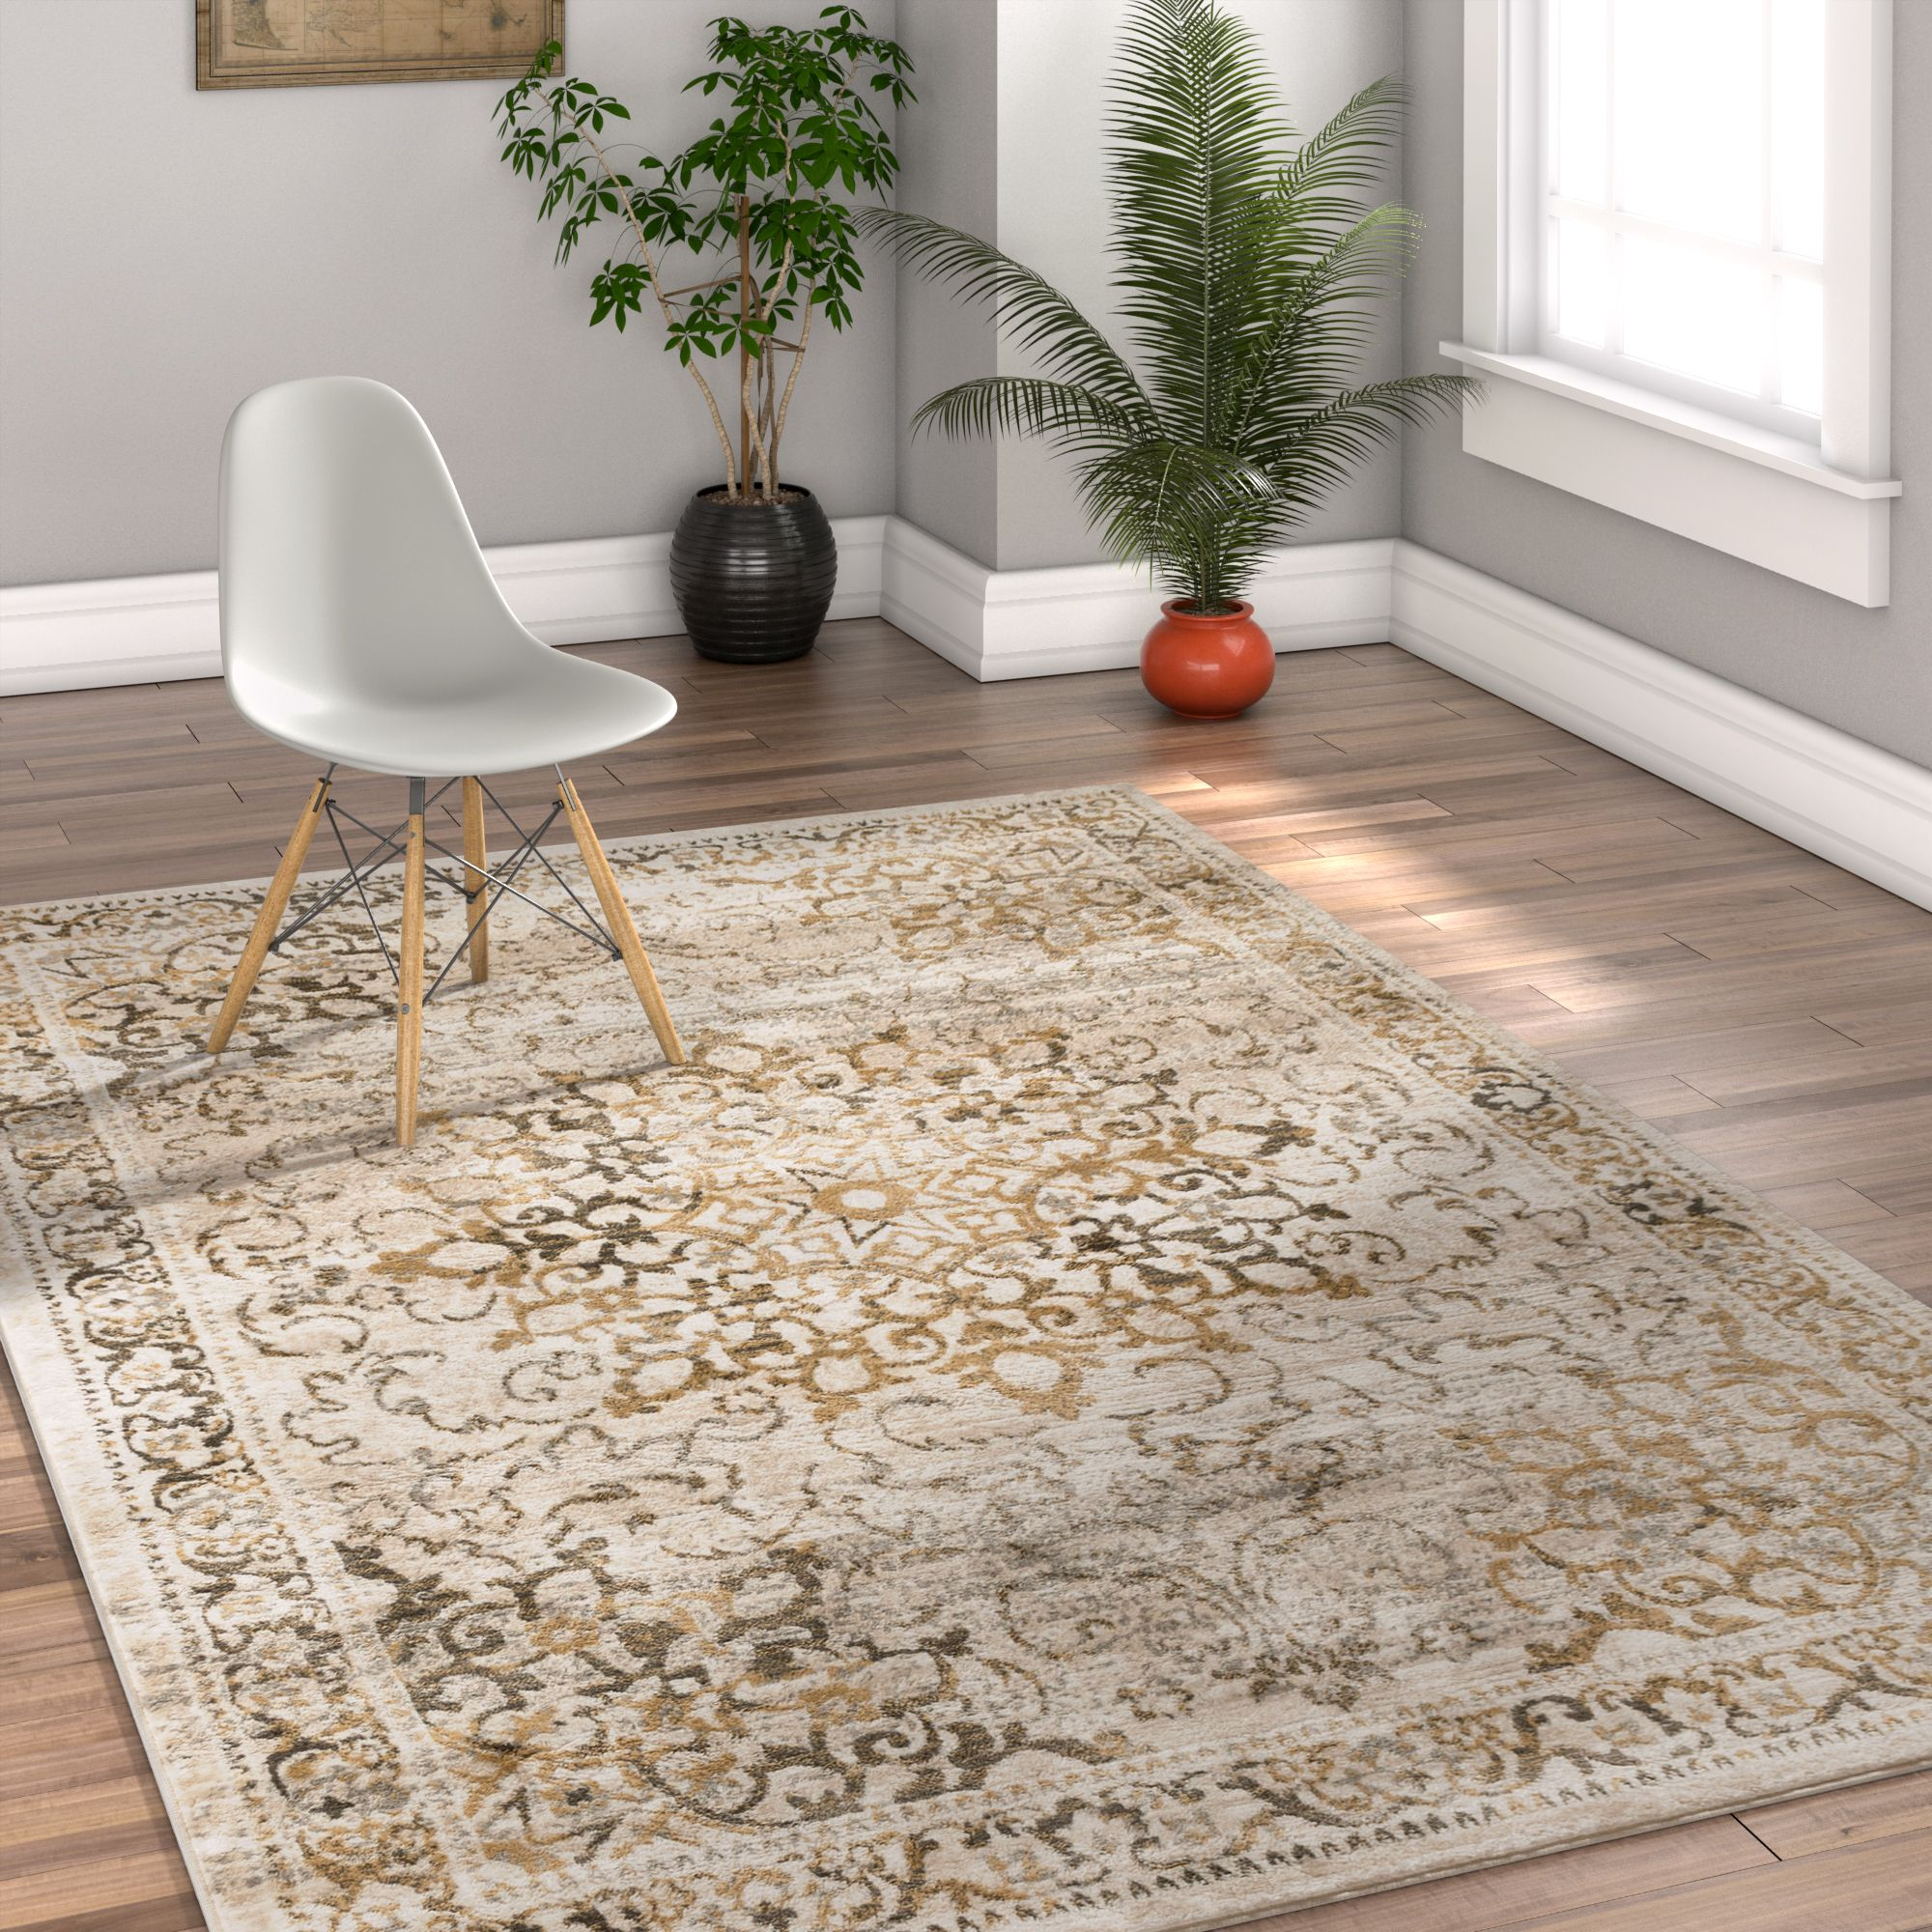 Well Woven Amba Sultana Traditional Gold Area Rug